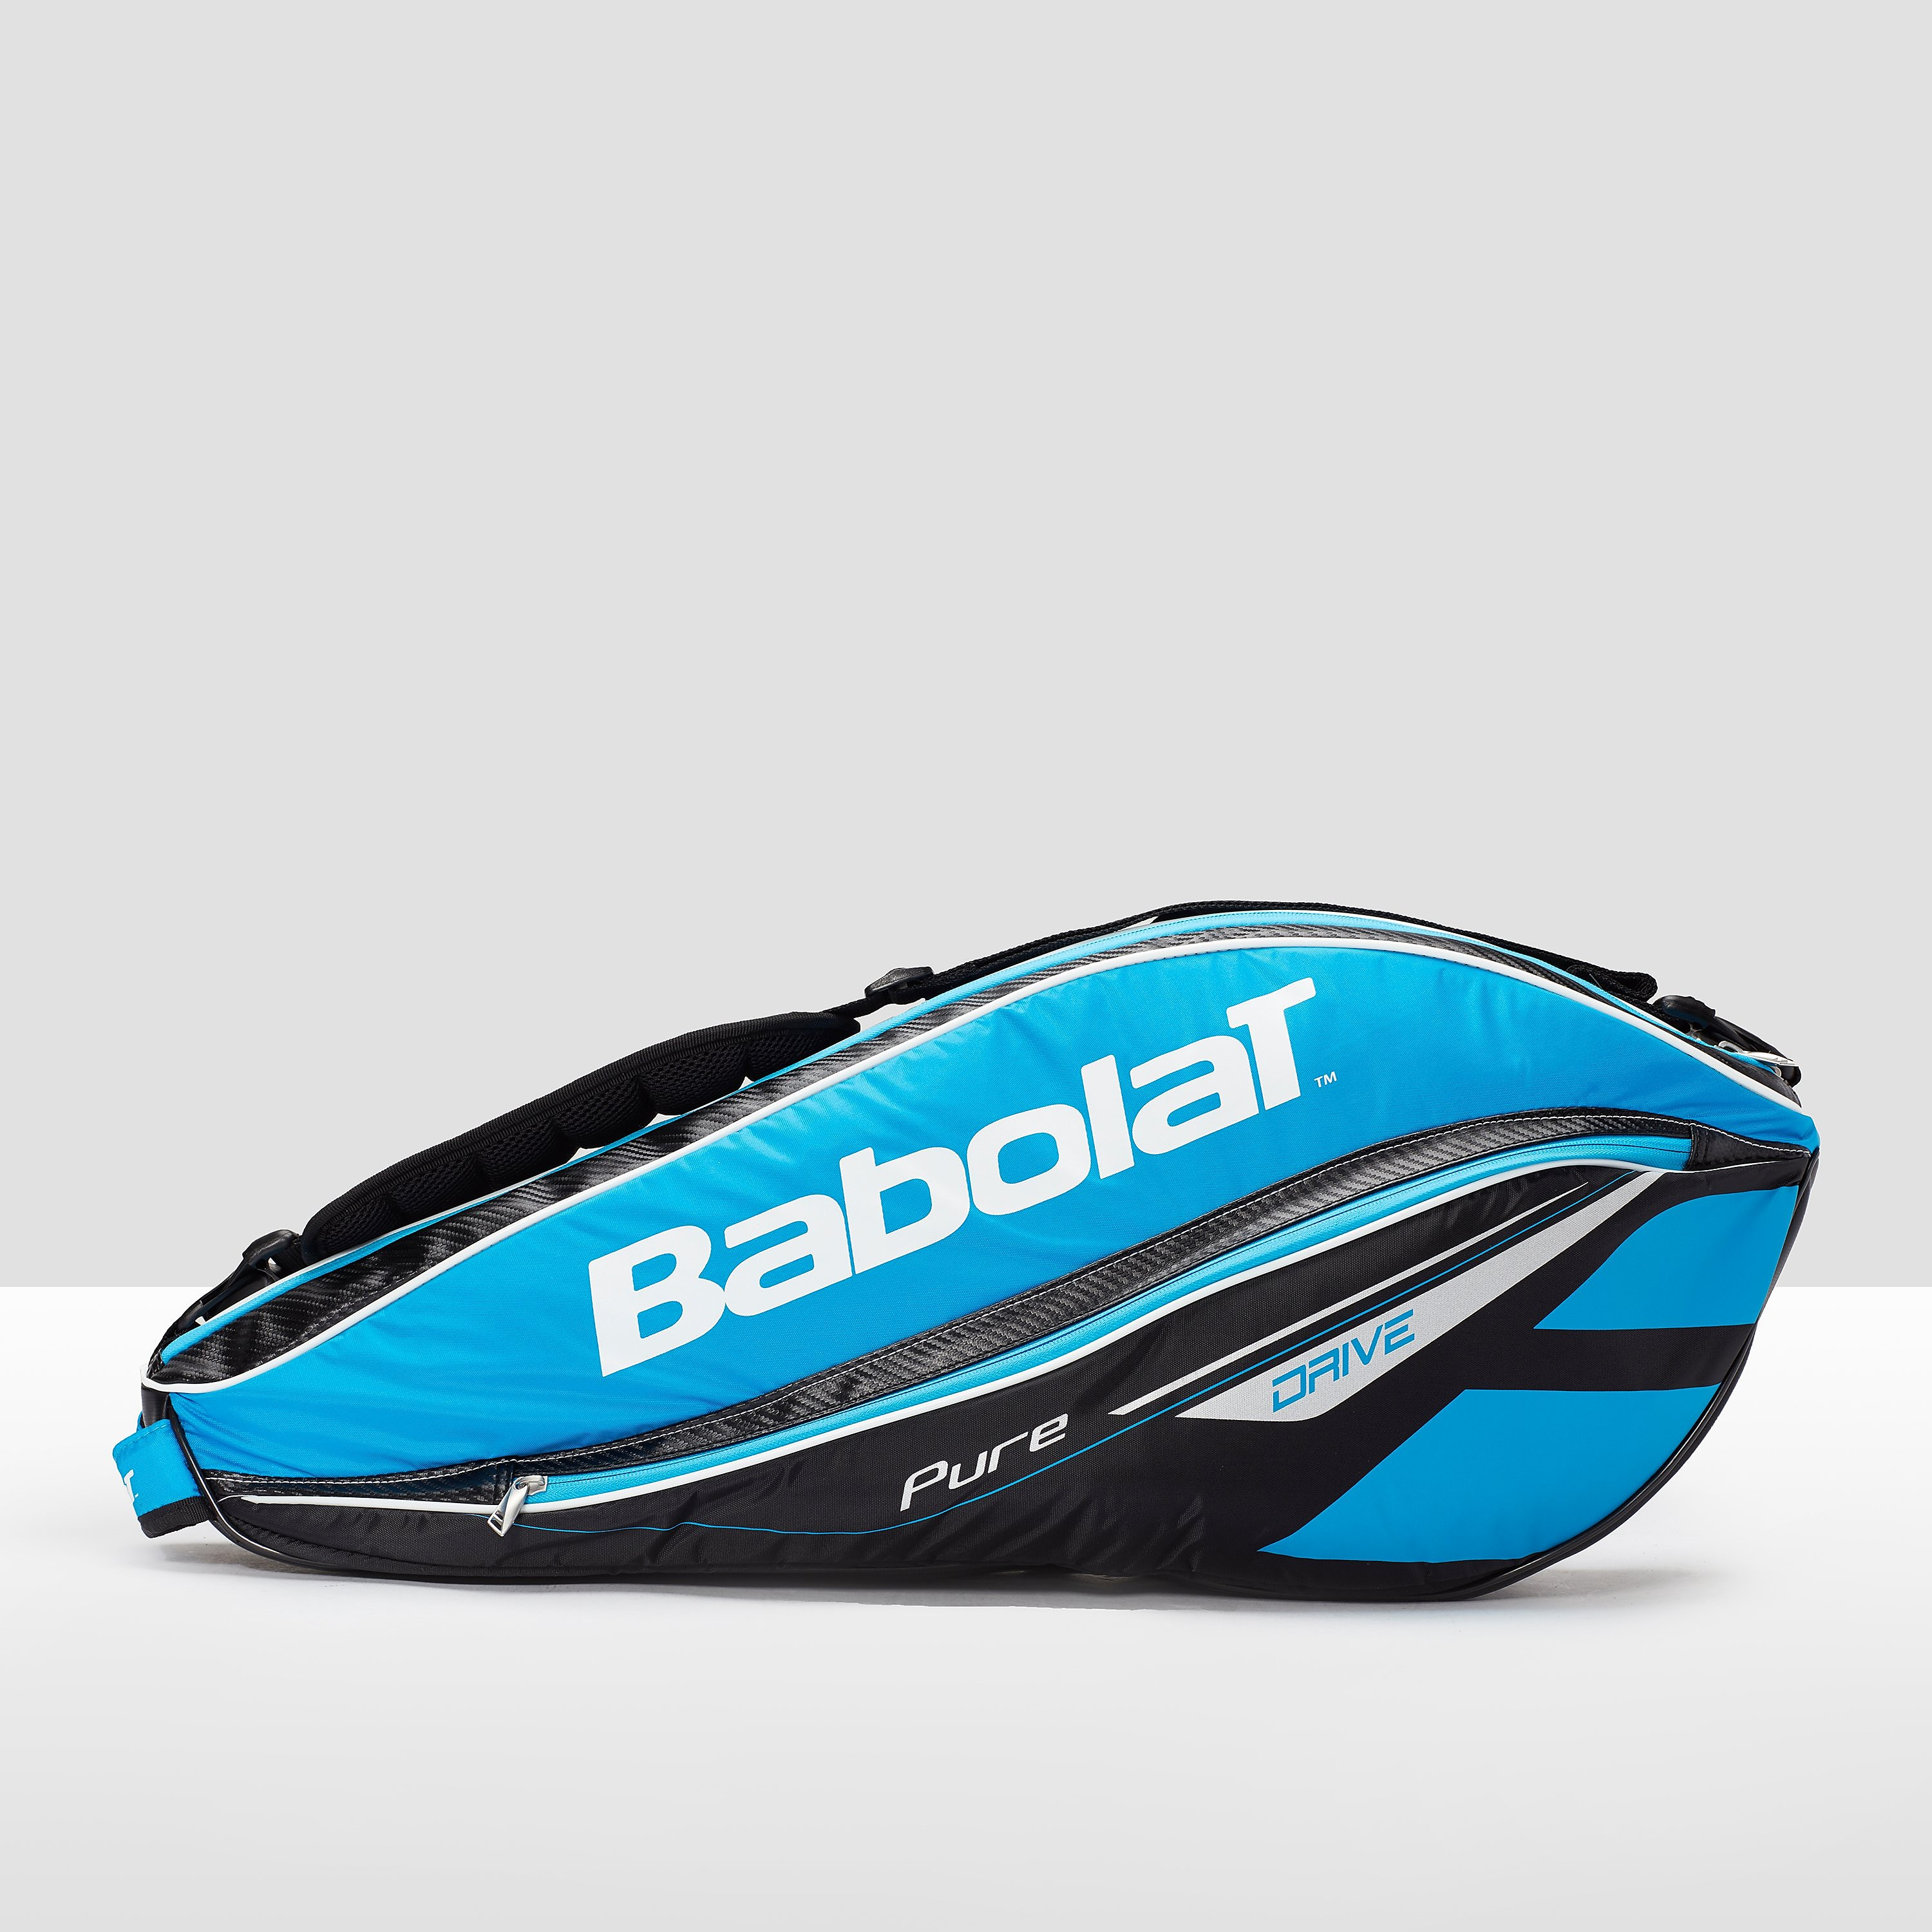 BABOLAT Racket Holder x3 Pure Drive